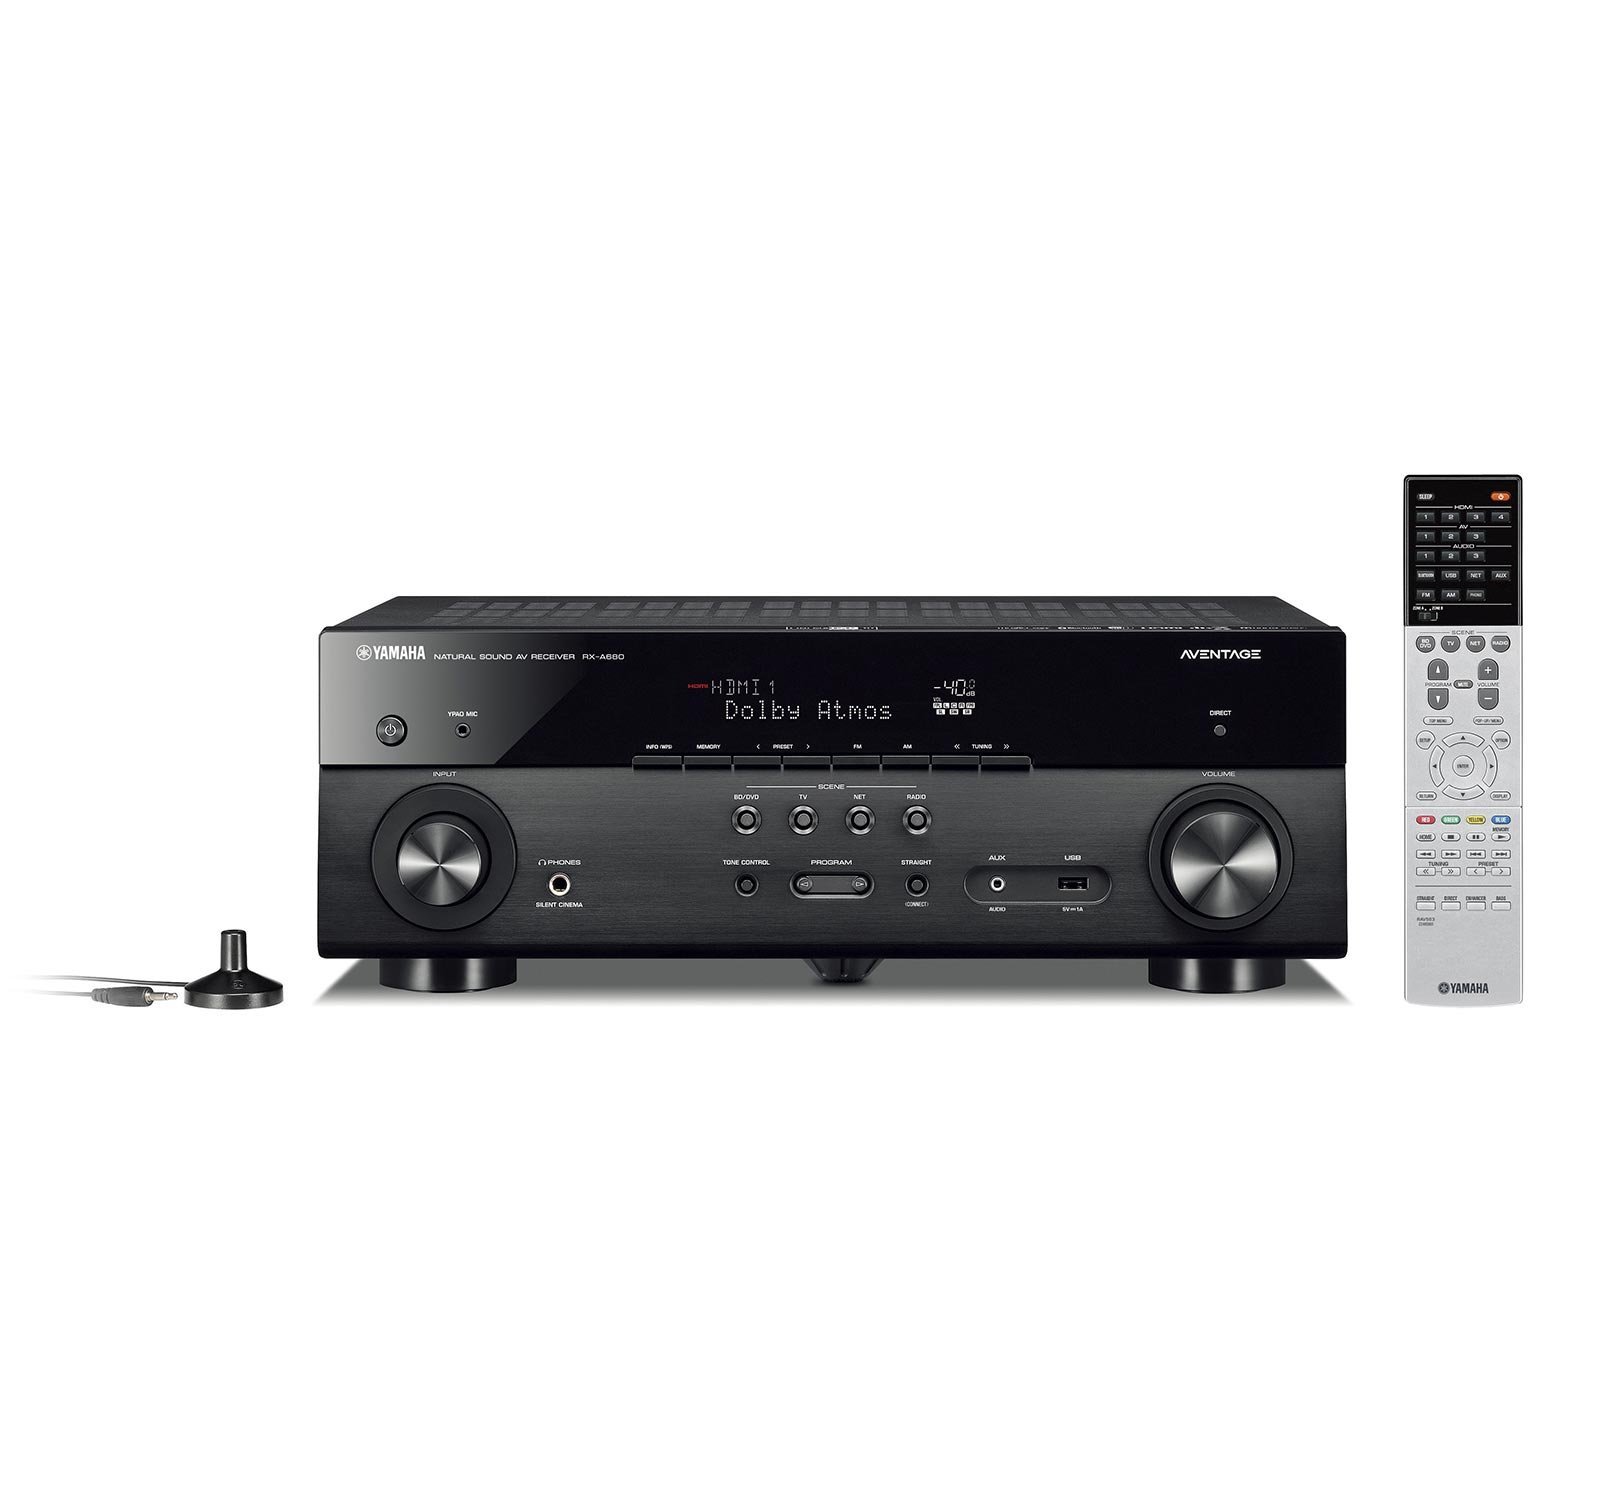 Yamaha AVENTAGE RX-A680 7.2-ch 4K Ultra HD AV Receiver with HDR, Dolby Vision, Dolby Atmos, Wi-Fi, Phono, and MusicCast - Black (Renewed) by Yamaha